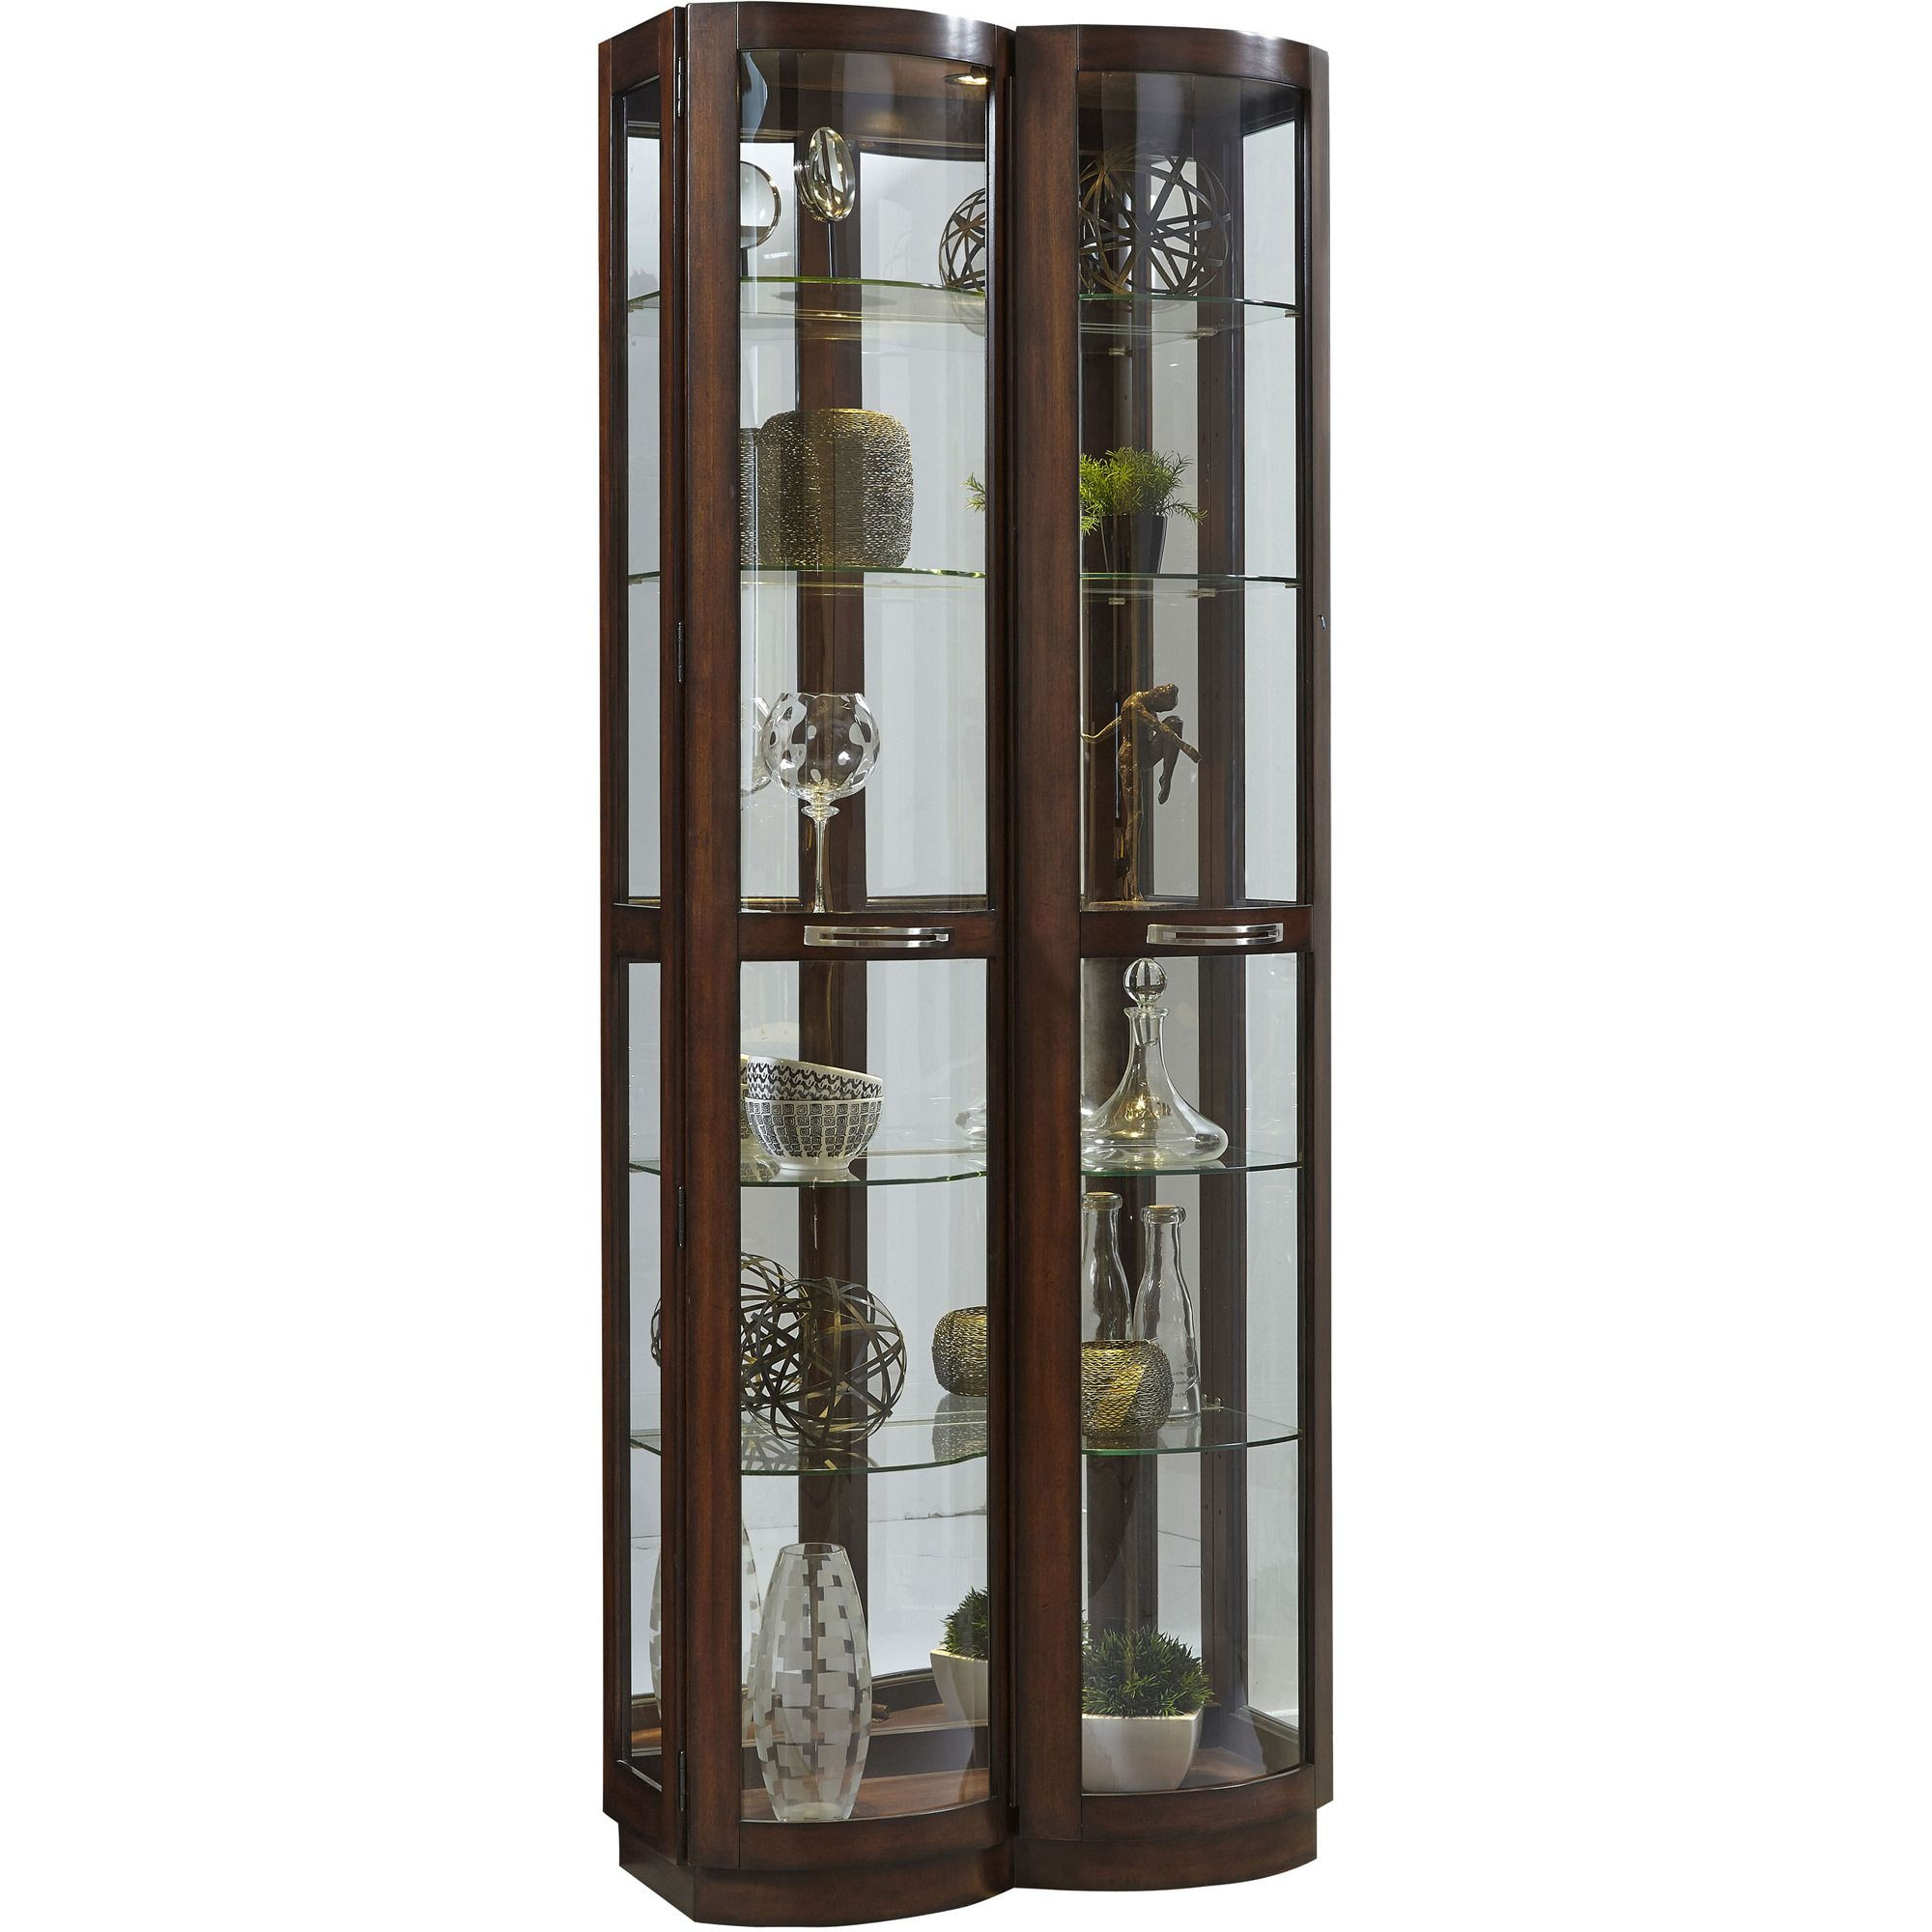 Pacific Heights Curved Front Curio In Brown Pulaski Home Gallery Stores Glass Shelves In Bathroom Glass Cabinets Display Glass Shelves